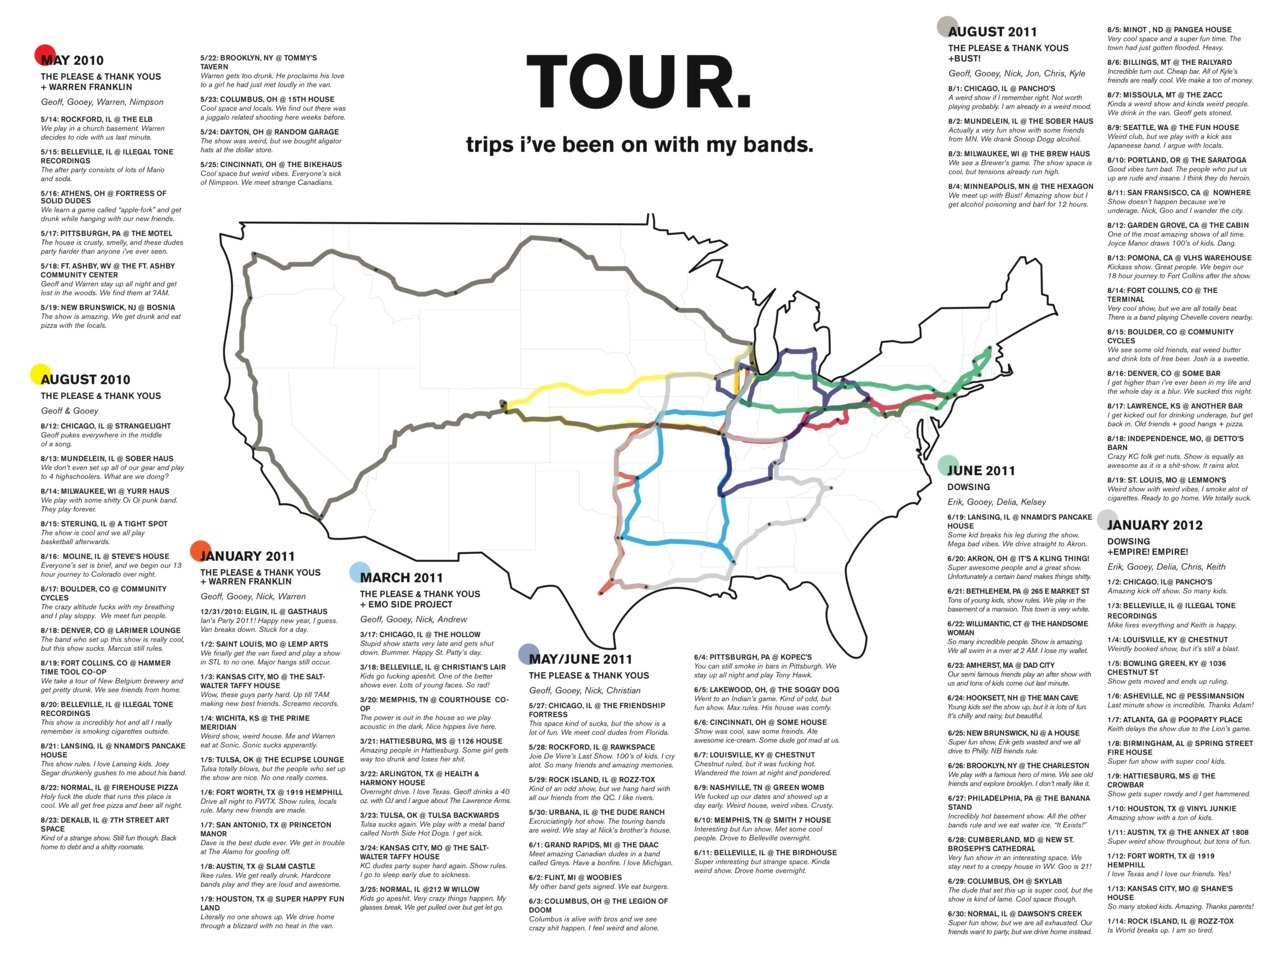 here's a map i made of every tour i've gone on so far. click through the pic to zoom in and stuff.